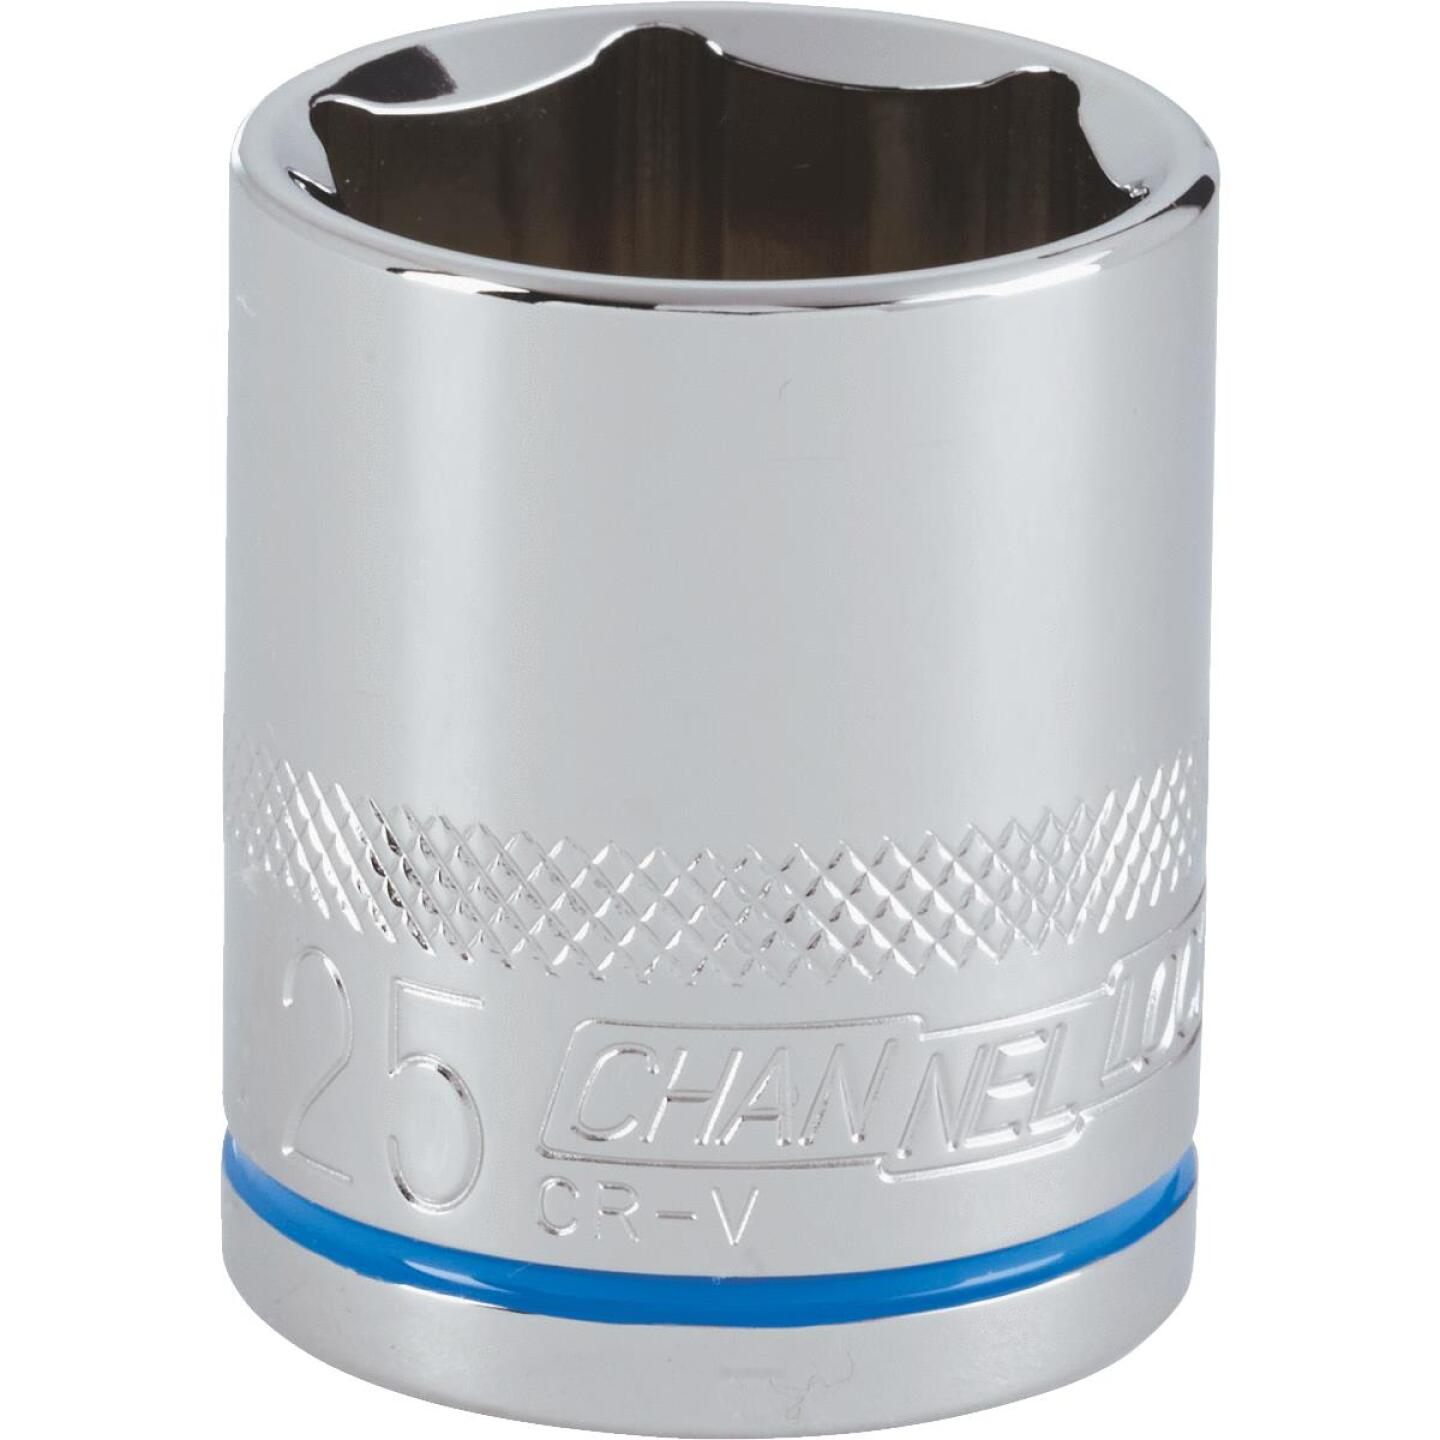 Channellock 1/2 In. Drive 25 mm 6-Point Shallow Metric Socket Image 1